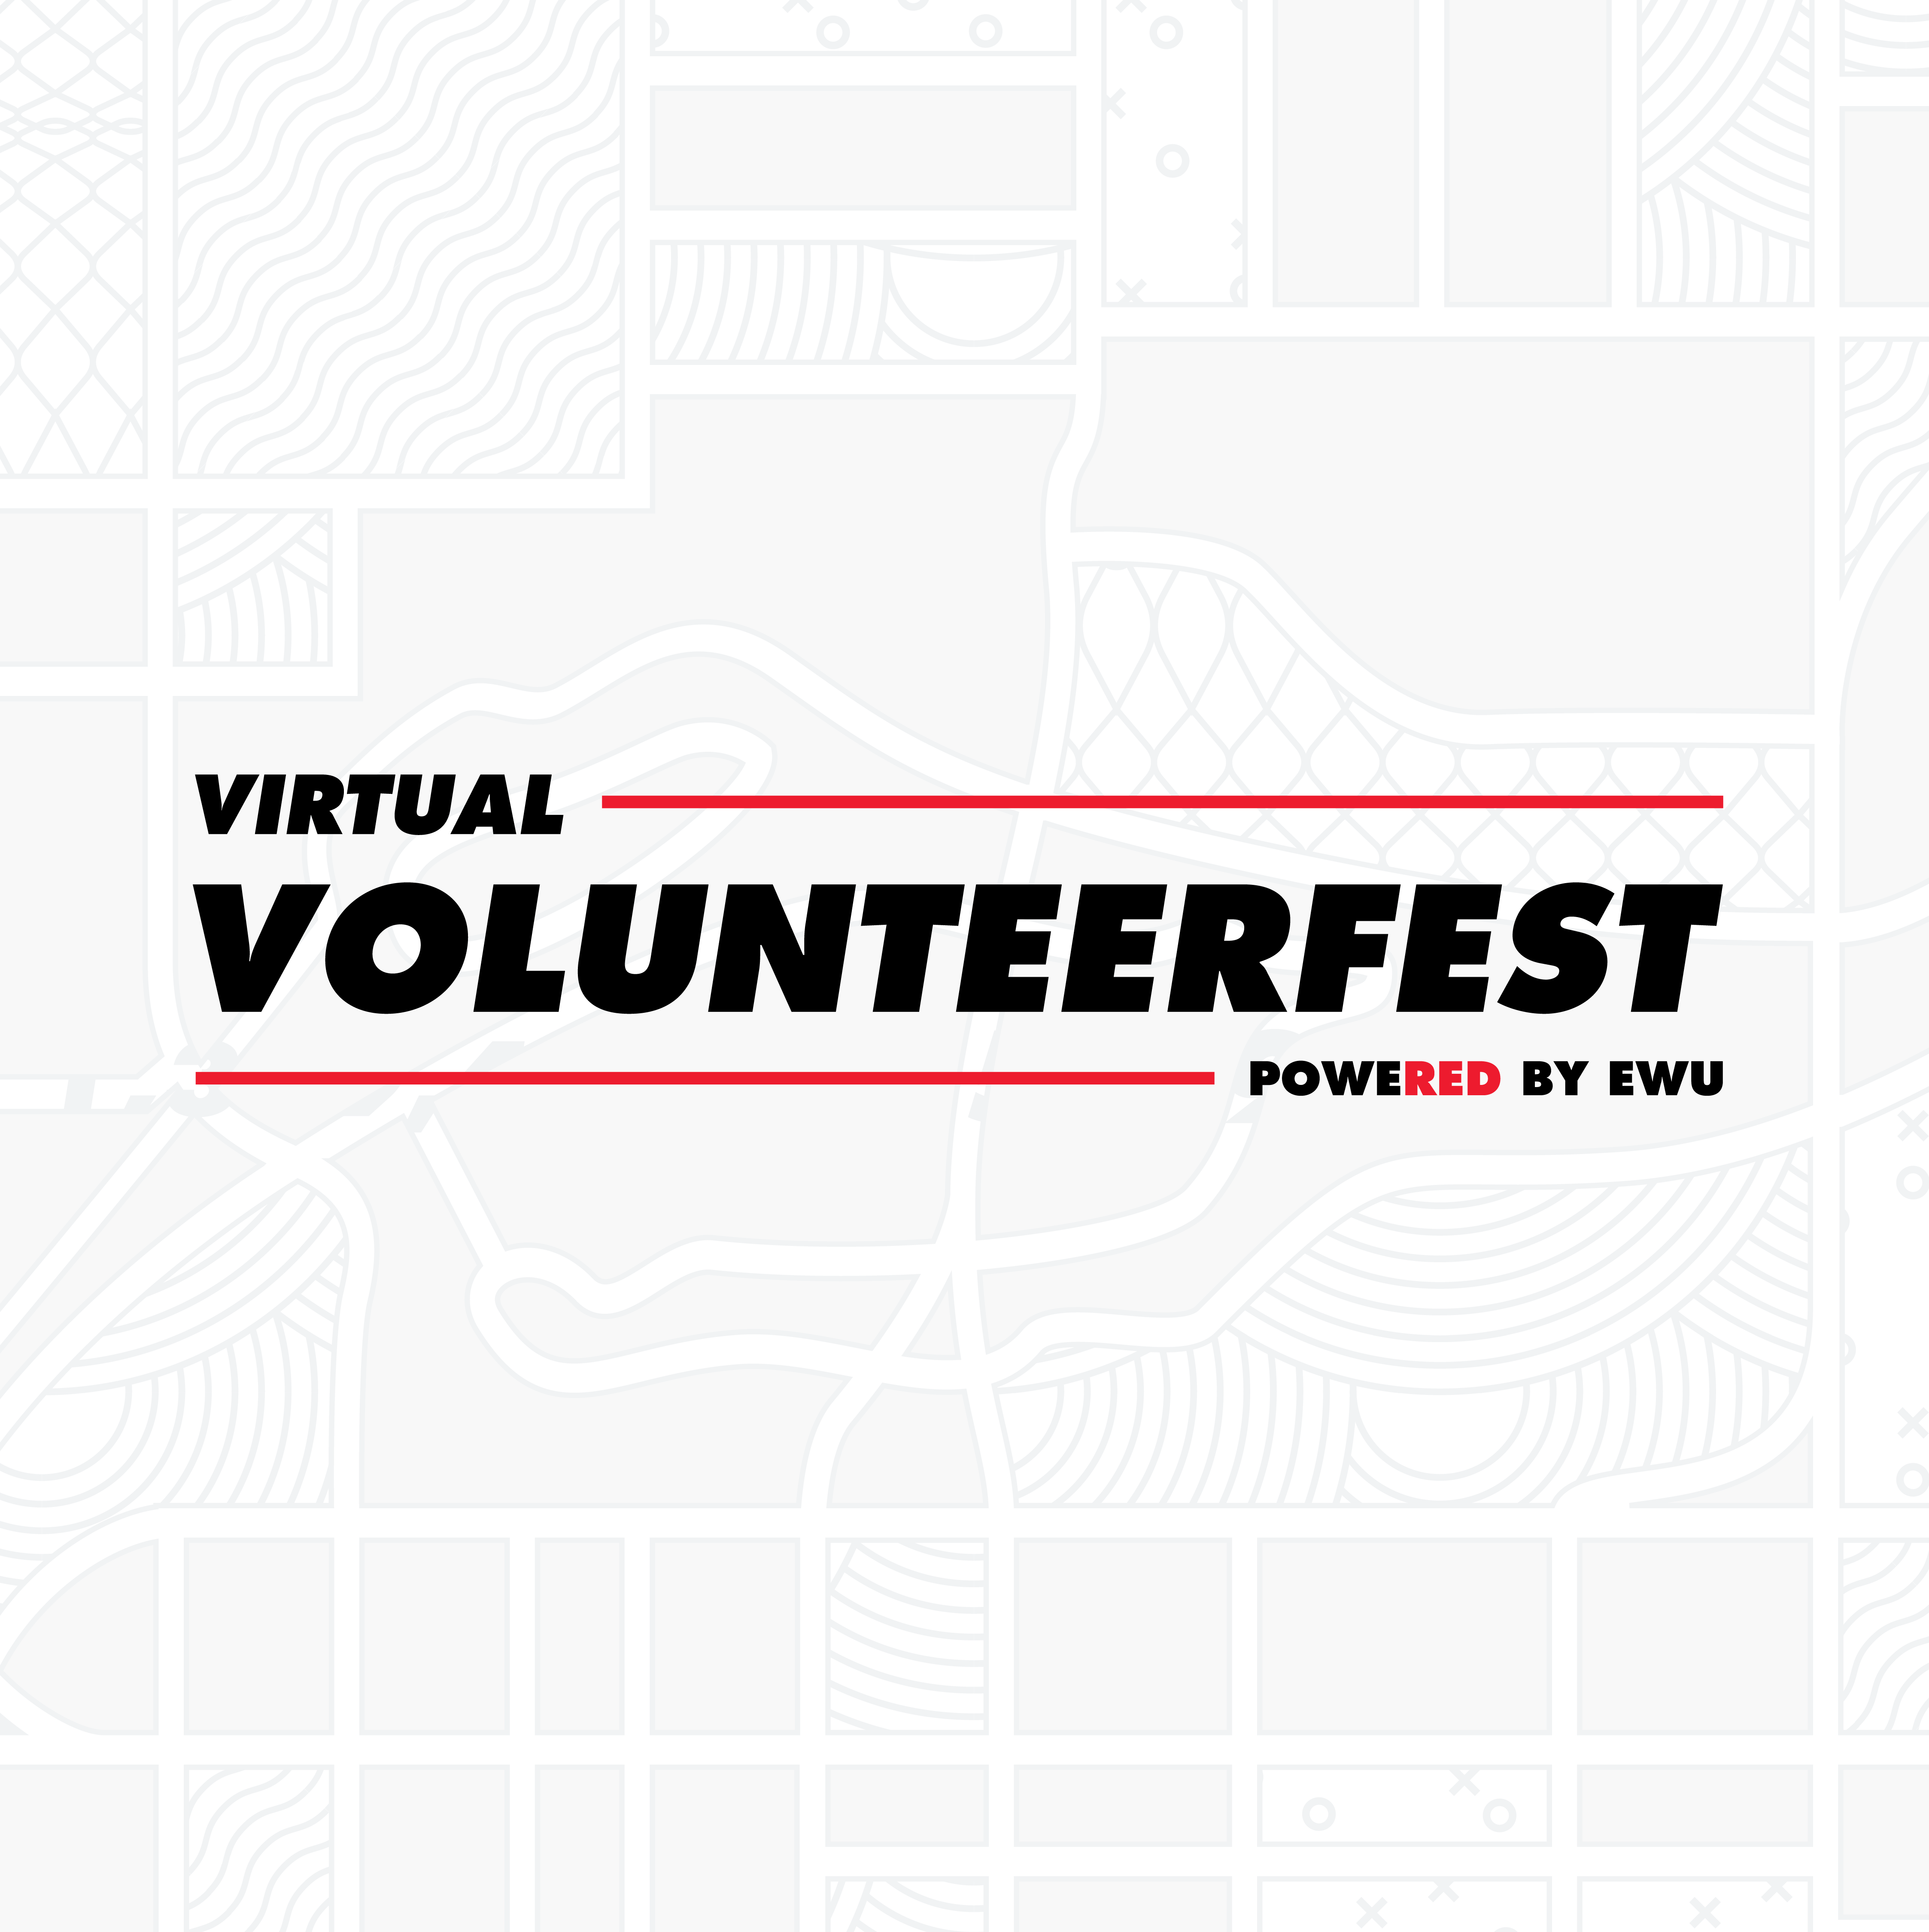 VolunteerFest